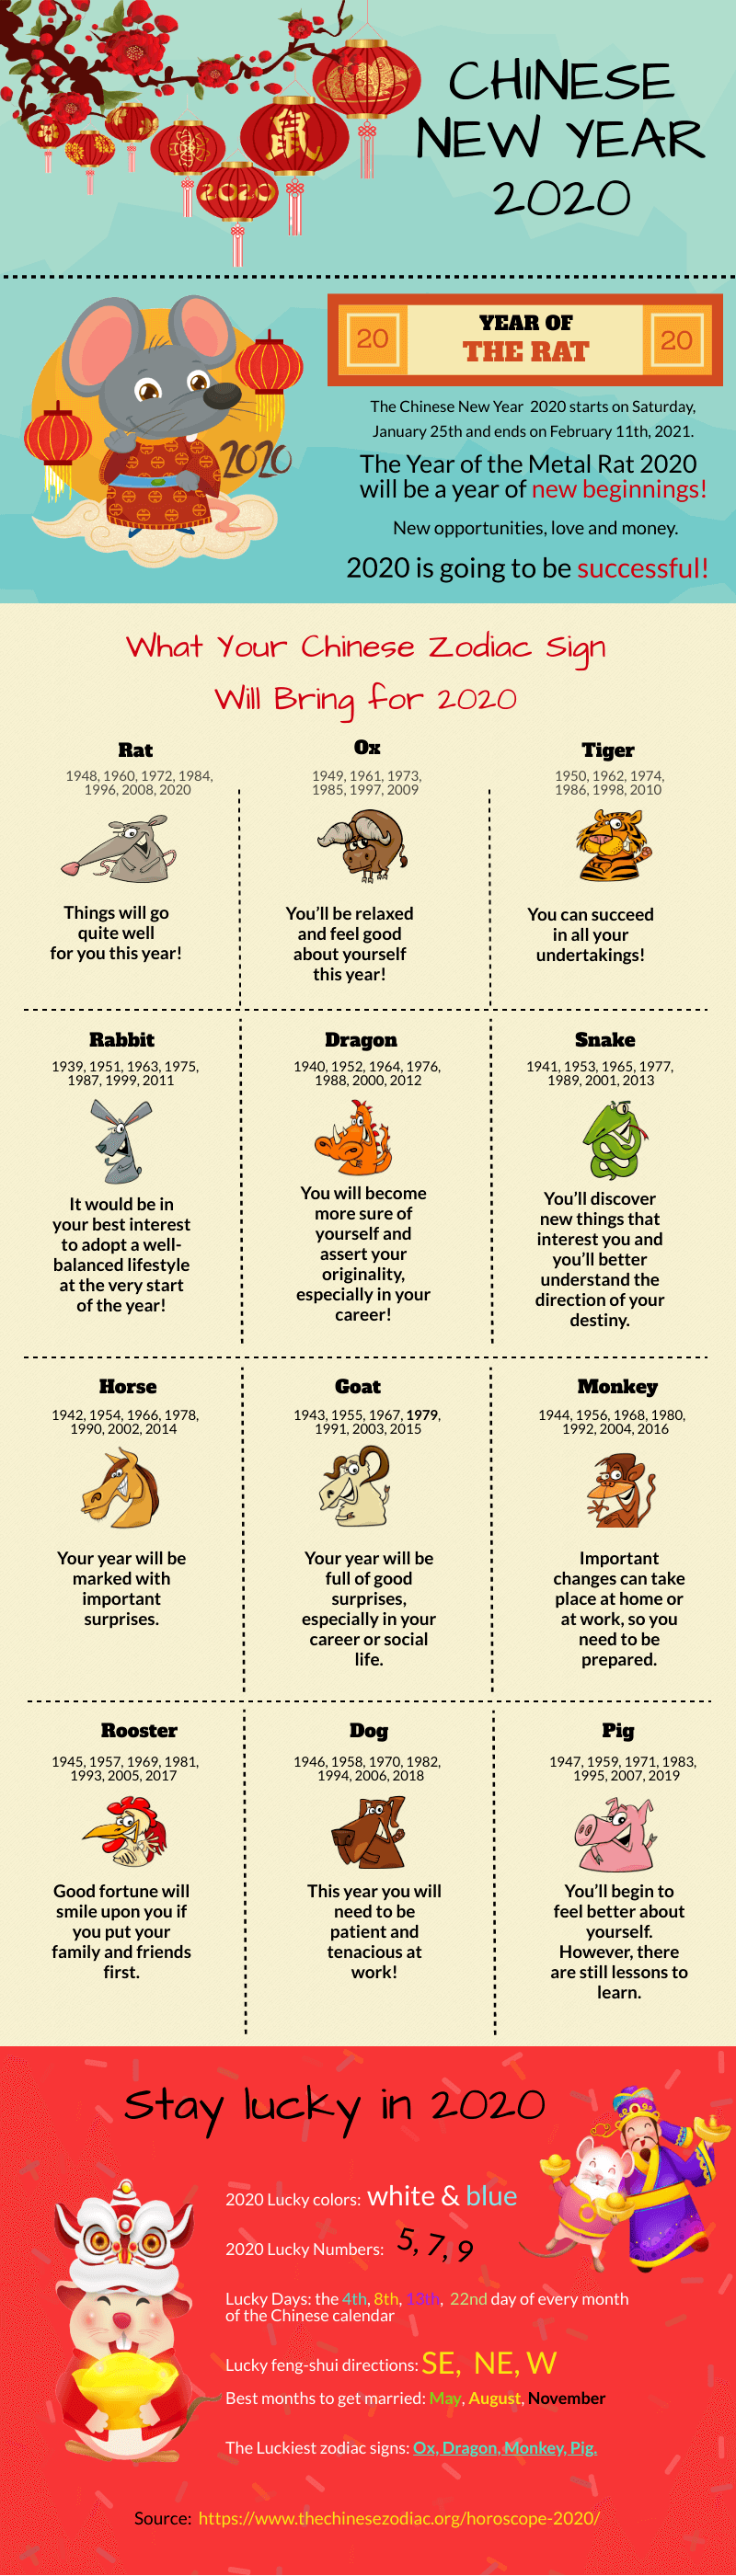 Chinese new year 2020 - year of the rat infographic